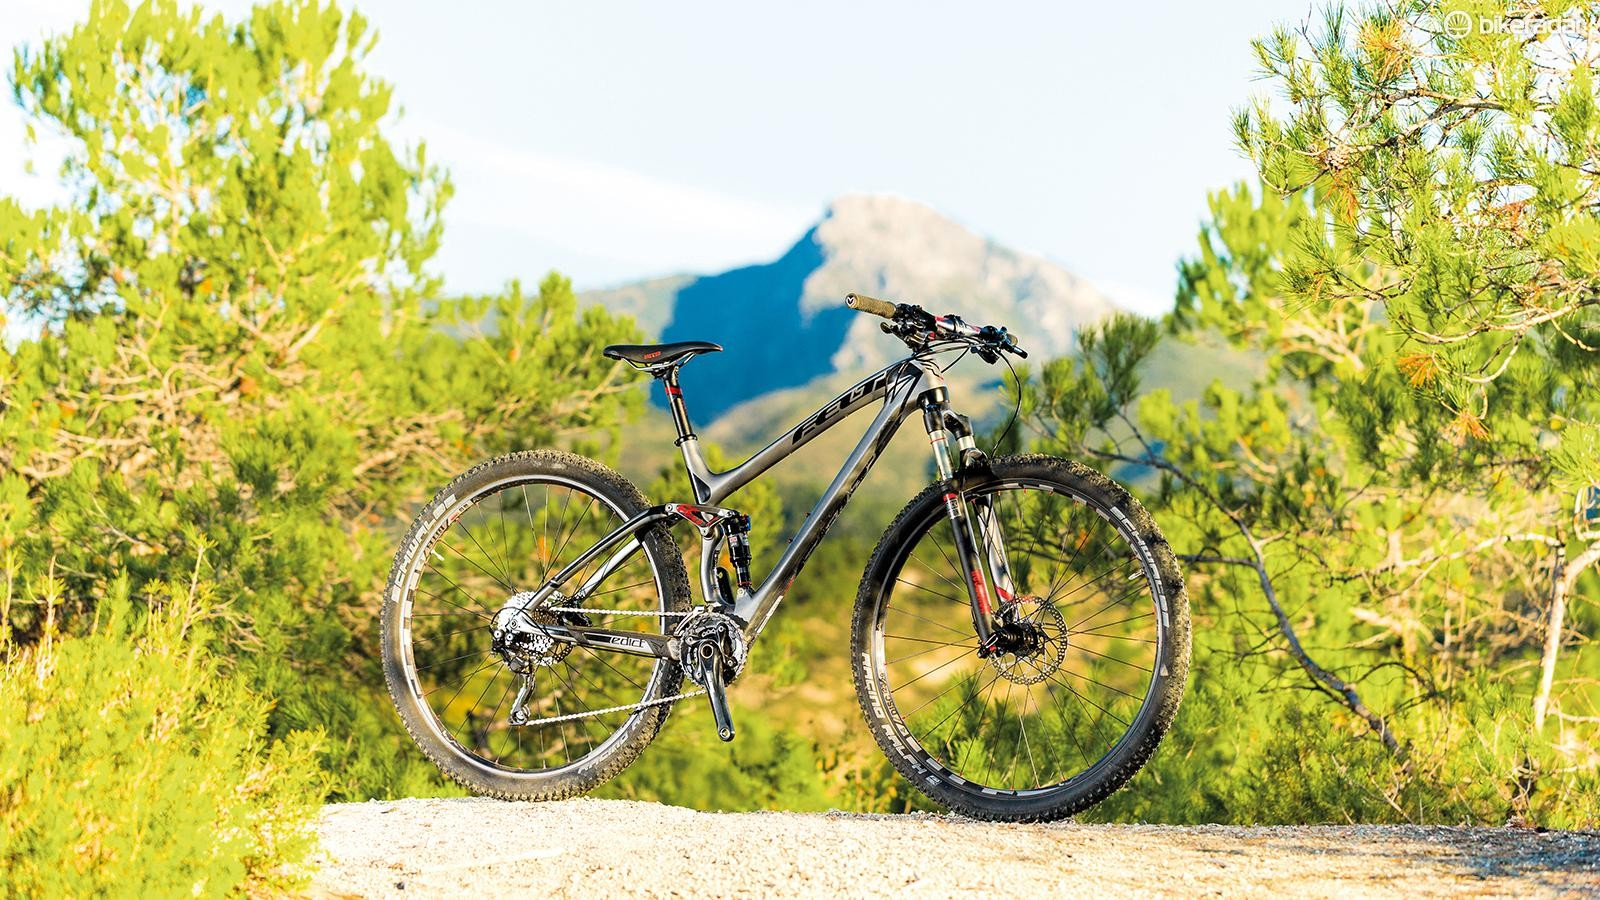 The Edict's steep head angle and relatively long rear end geometry is the opposite of the slack front, tight rear template favoured by enduro-style trail bikes